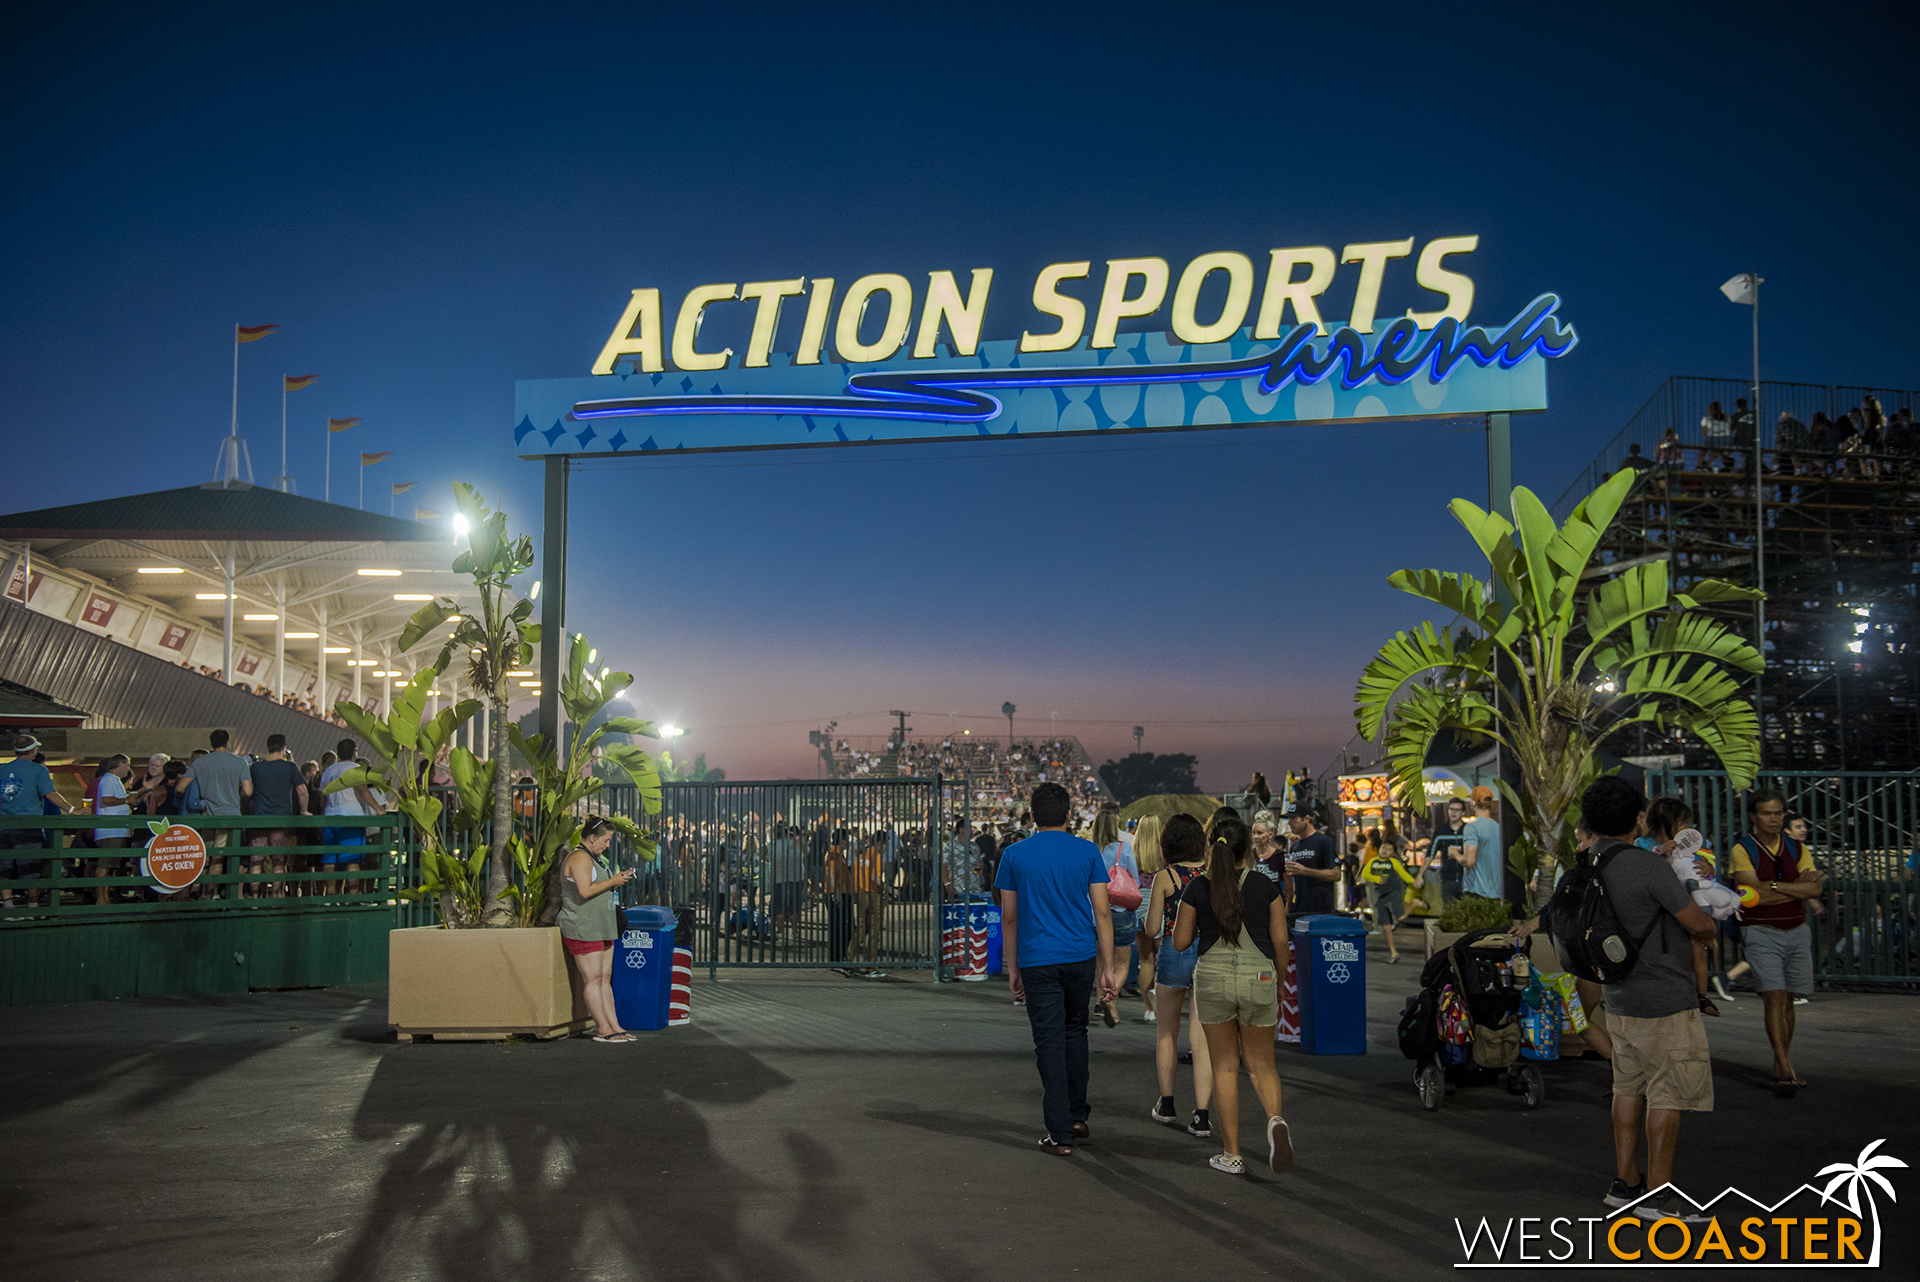 In the Livestock area, the Action Sports Arena also hosts live entertainment in the form of motorcross races, demolition derbies, and other high adrenaline shows.